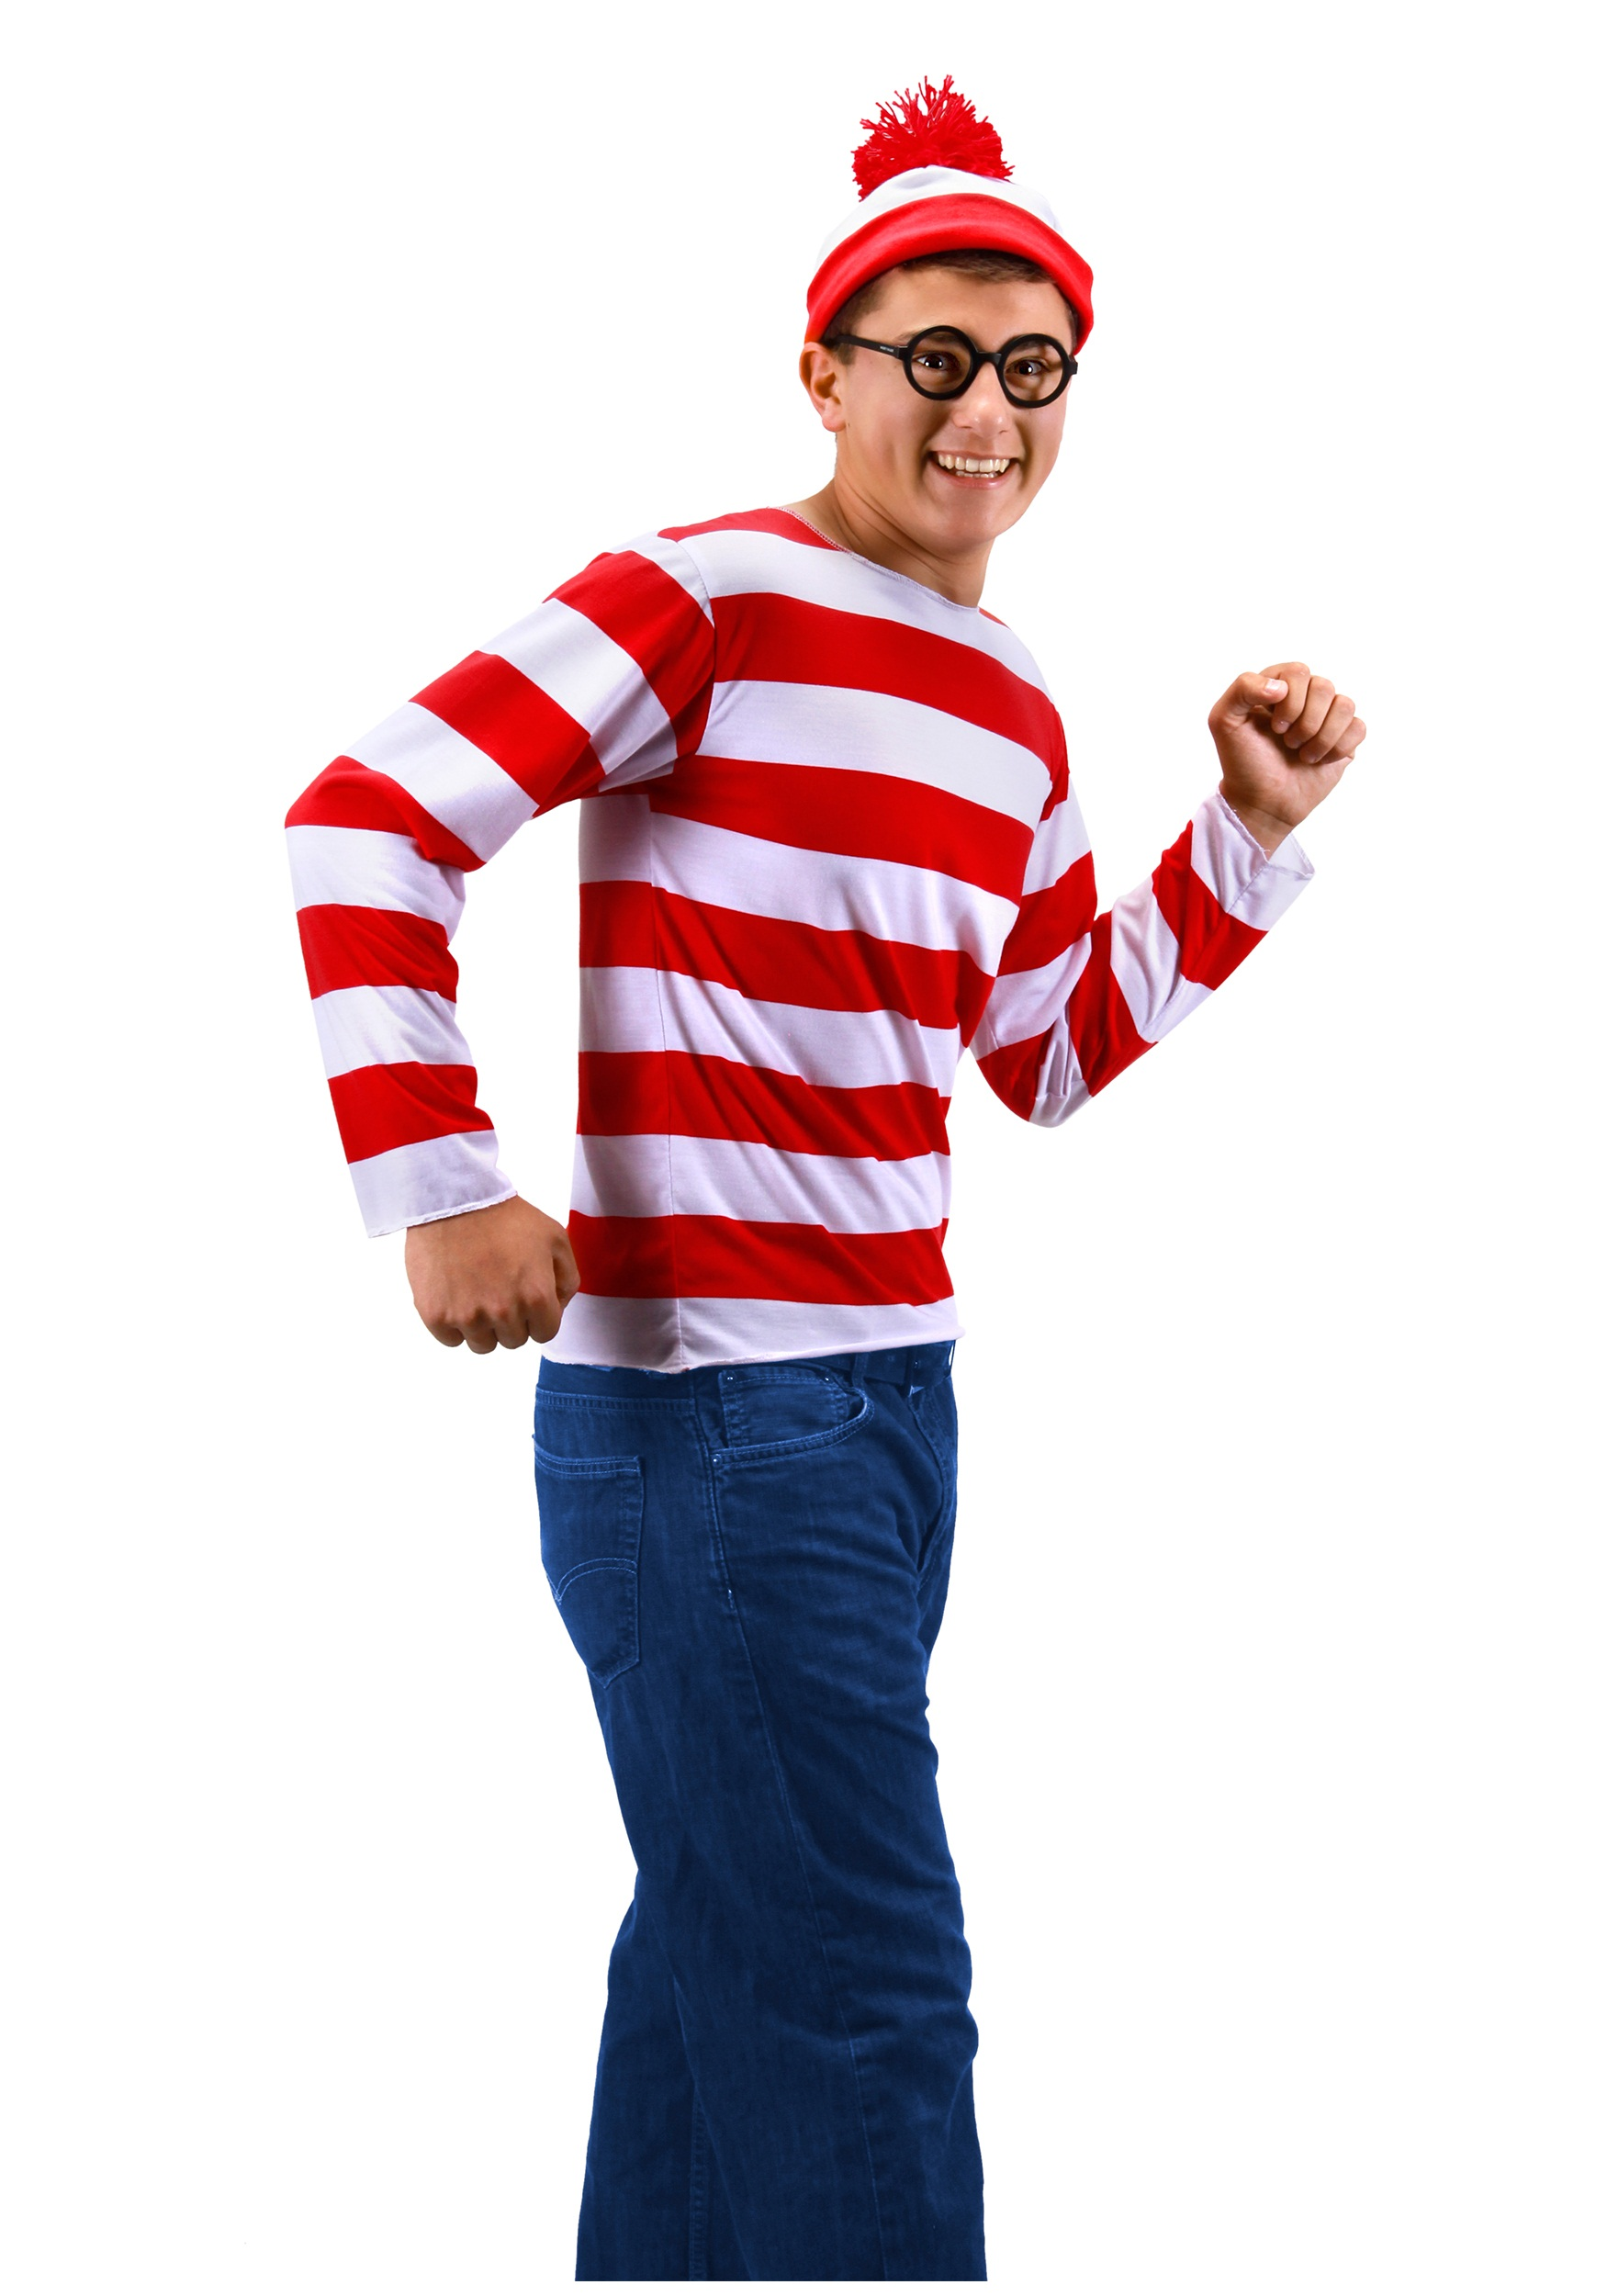 finding waldo girl Where's waldo girl fourth of july where's waldo girl fourth of july 1 where's waldora where's waldora 7 where's waldo where's waldo 1 wheres waldo girl.